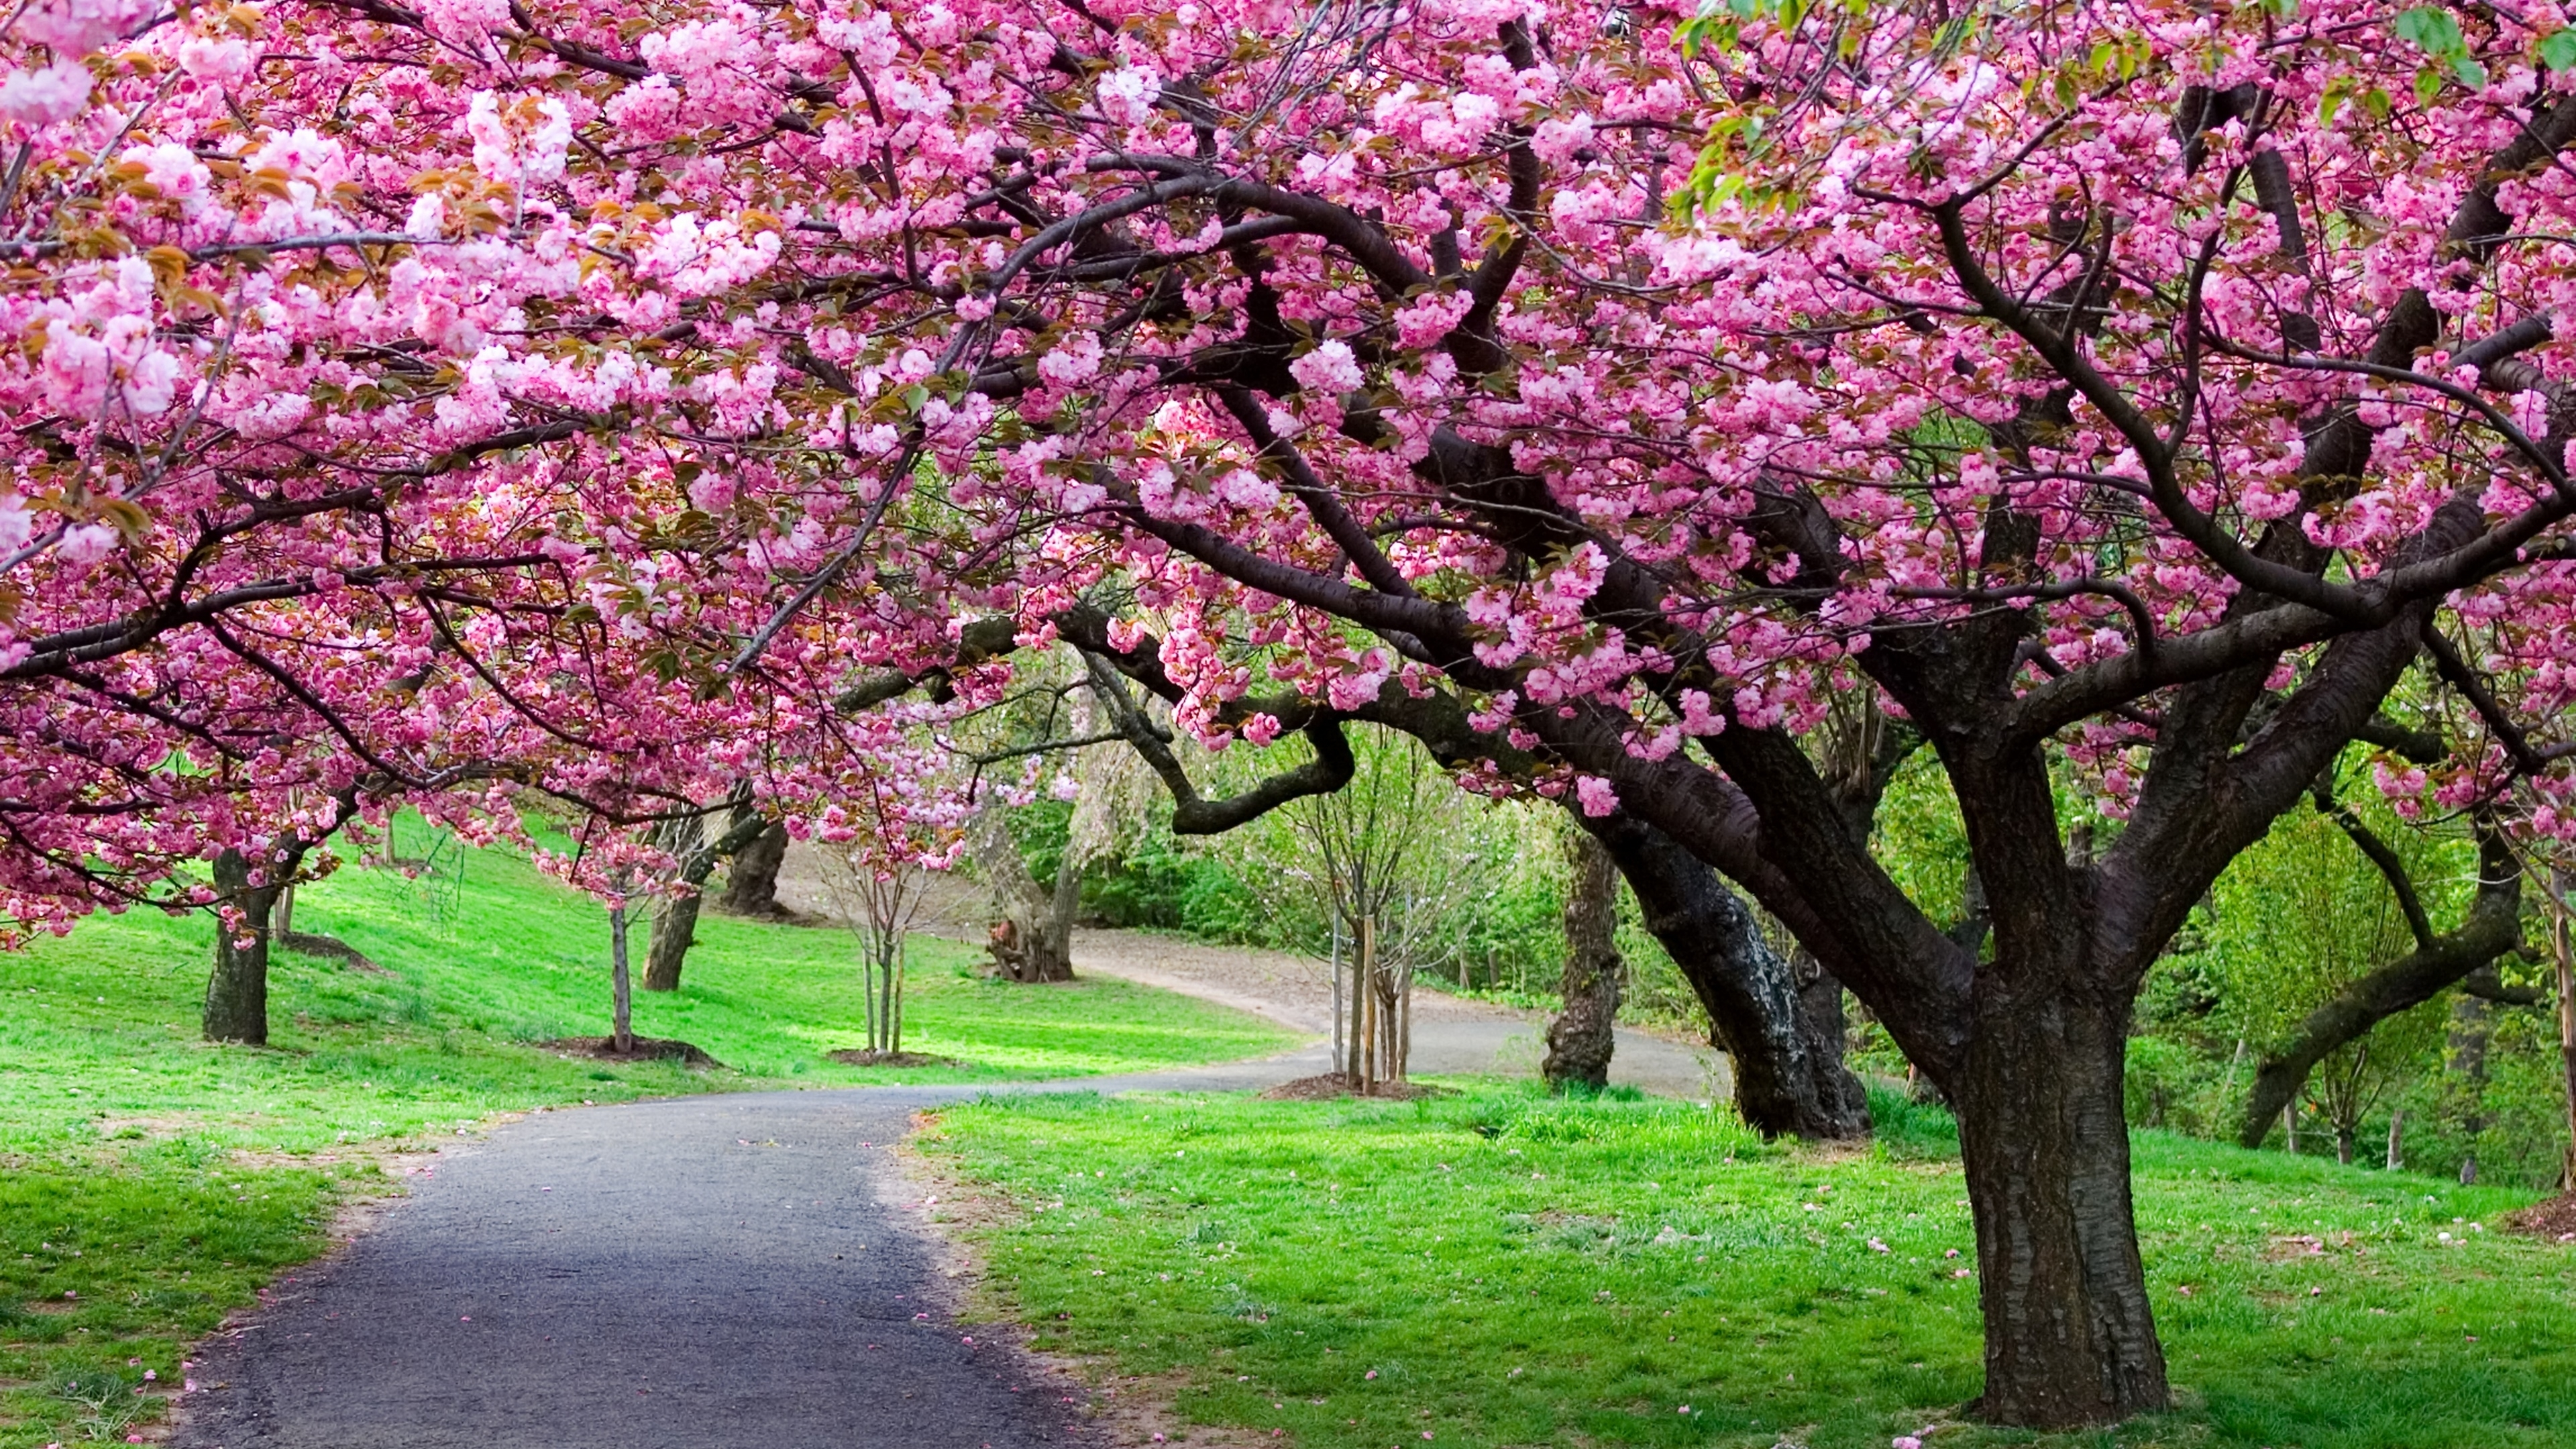 233 cherry blossom hd wallpapers   background images - wallpaper abyss